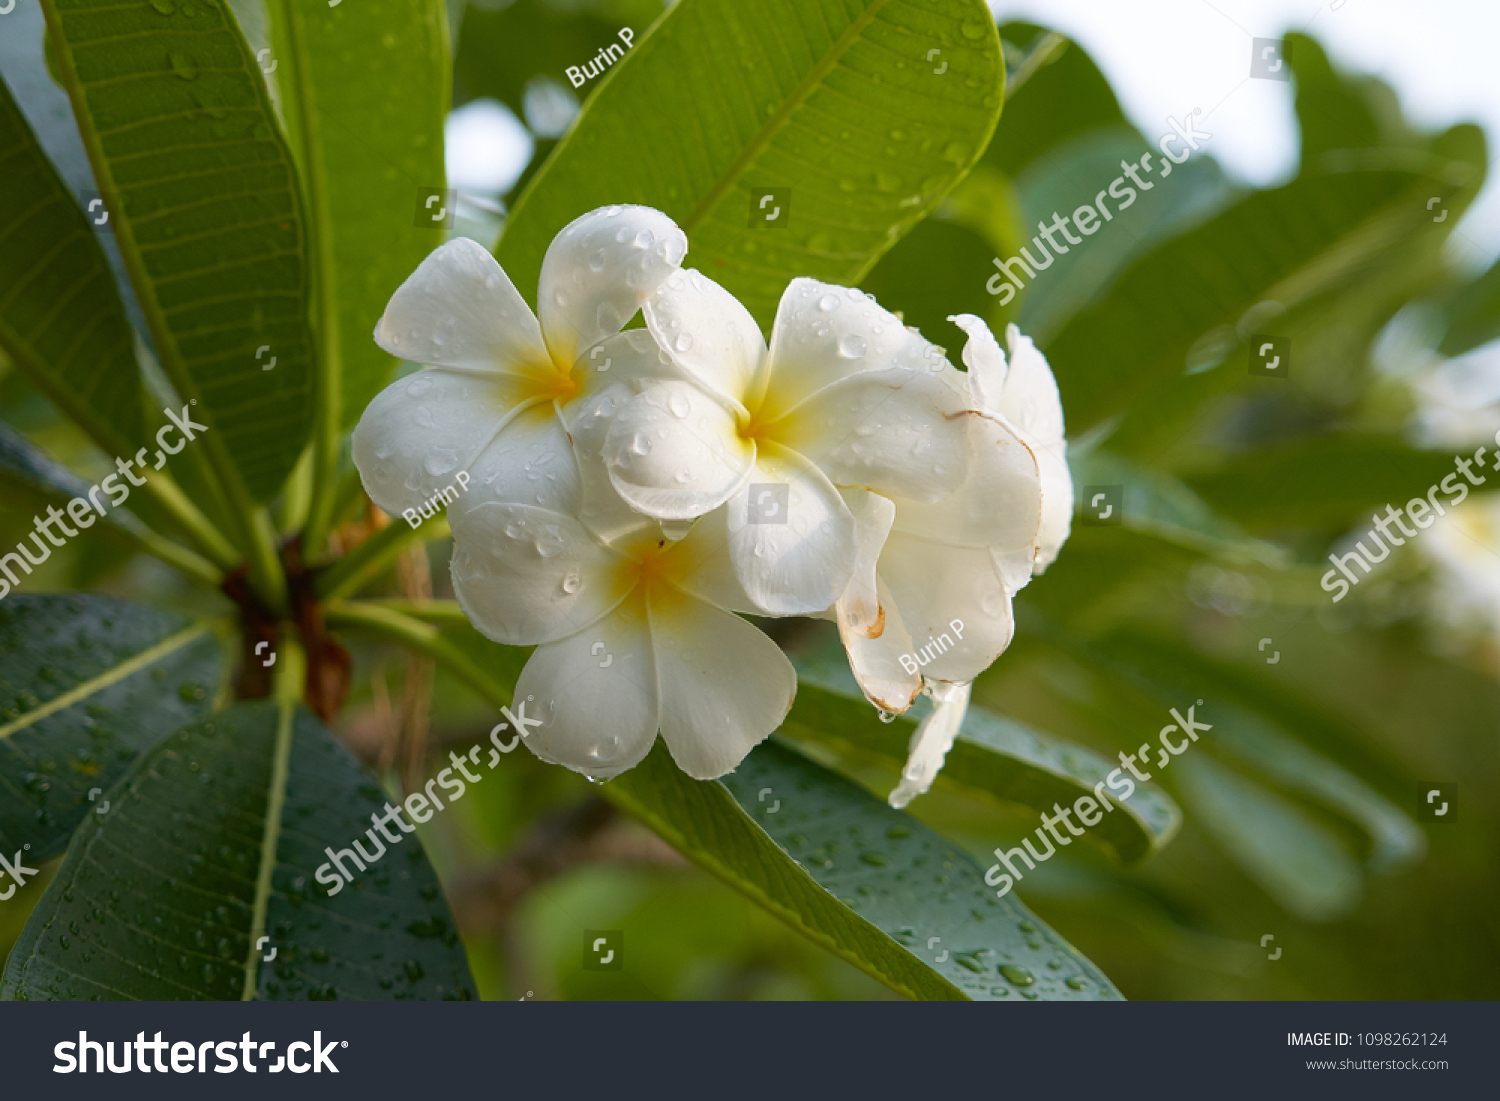 White plumeria west indian jasmine flowers and green leaves in id 1098262124 izmirmasajfo